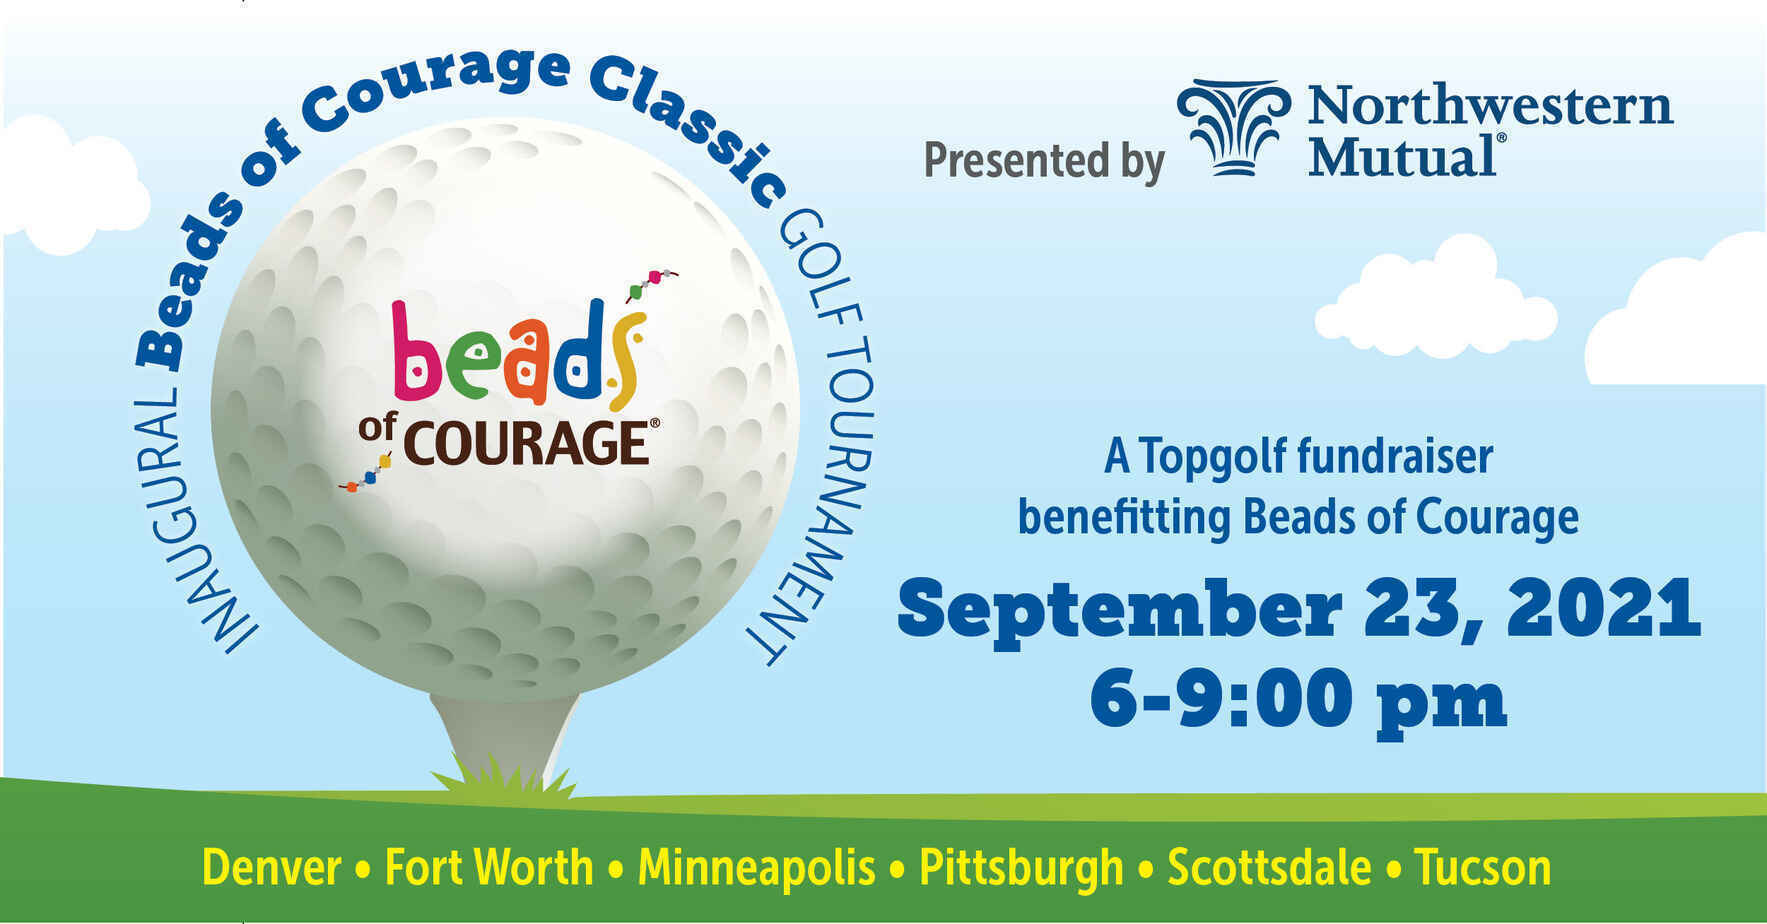 2021 Fort Worth Beads of Courage Classic Golf Tournament image